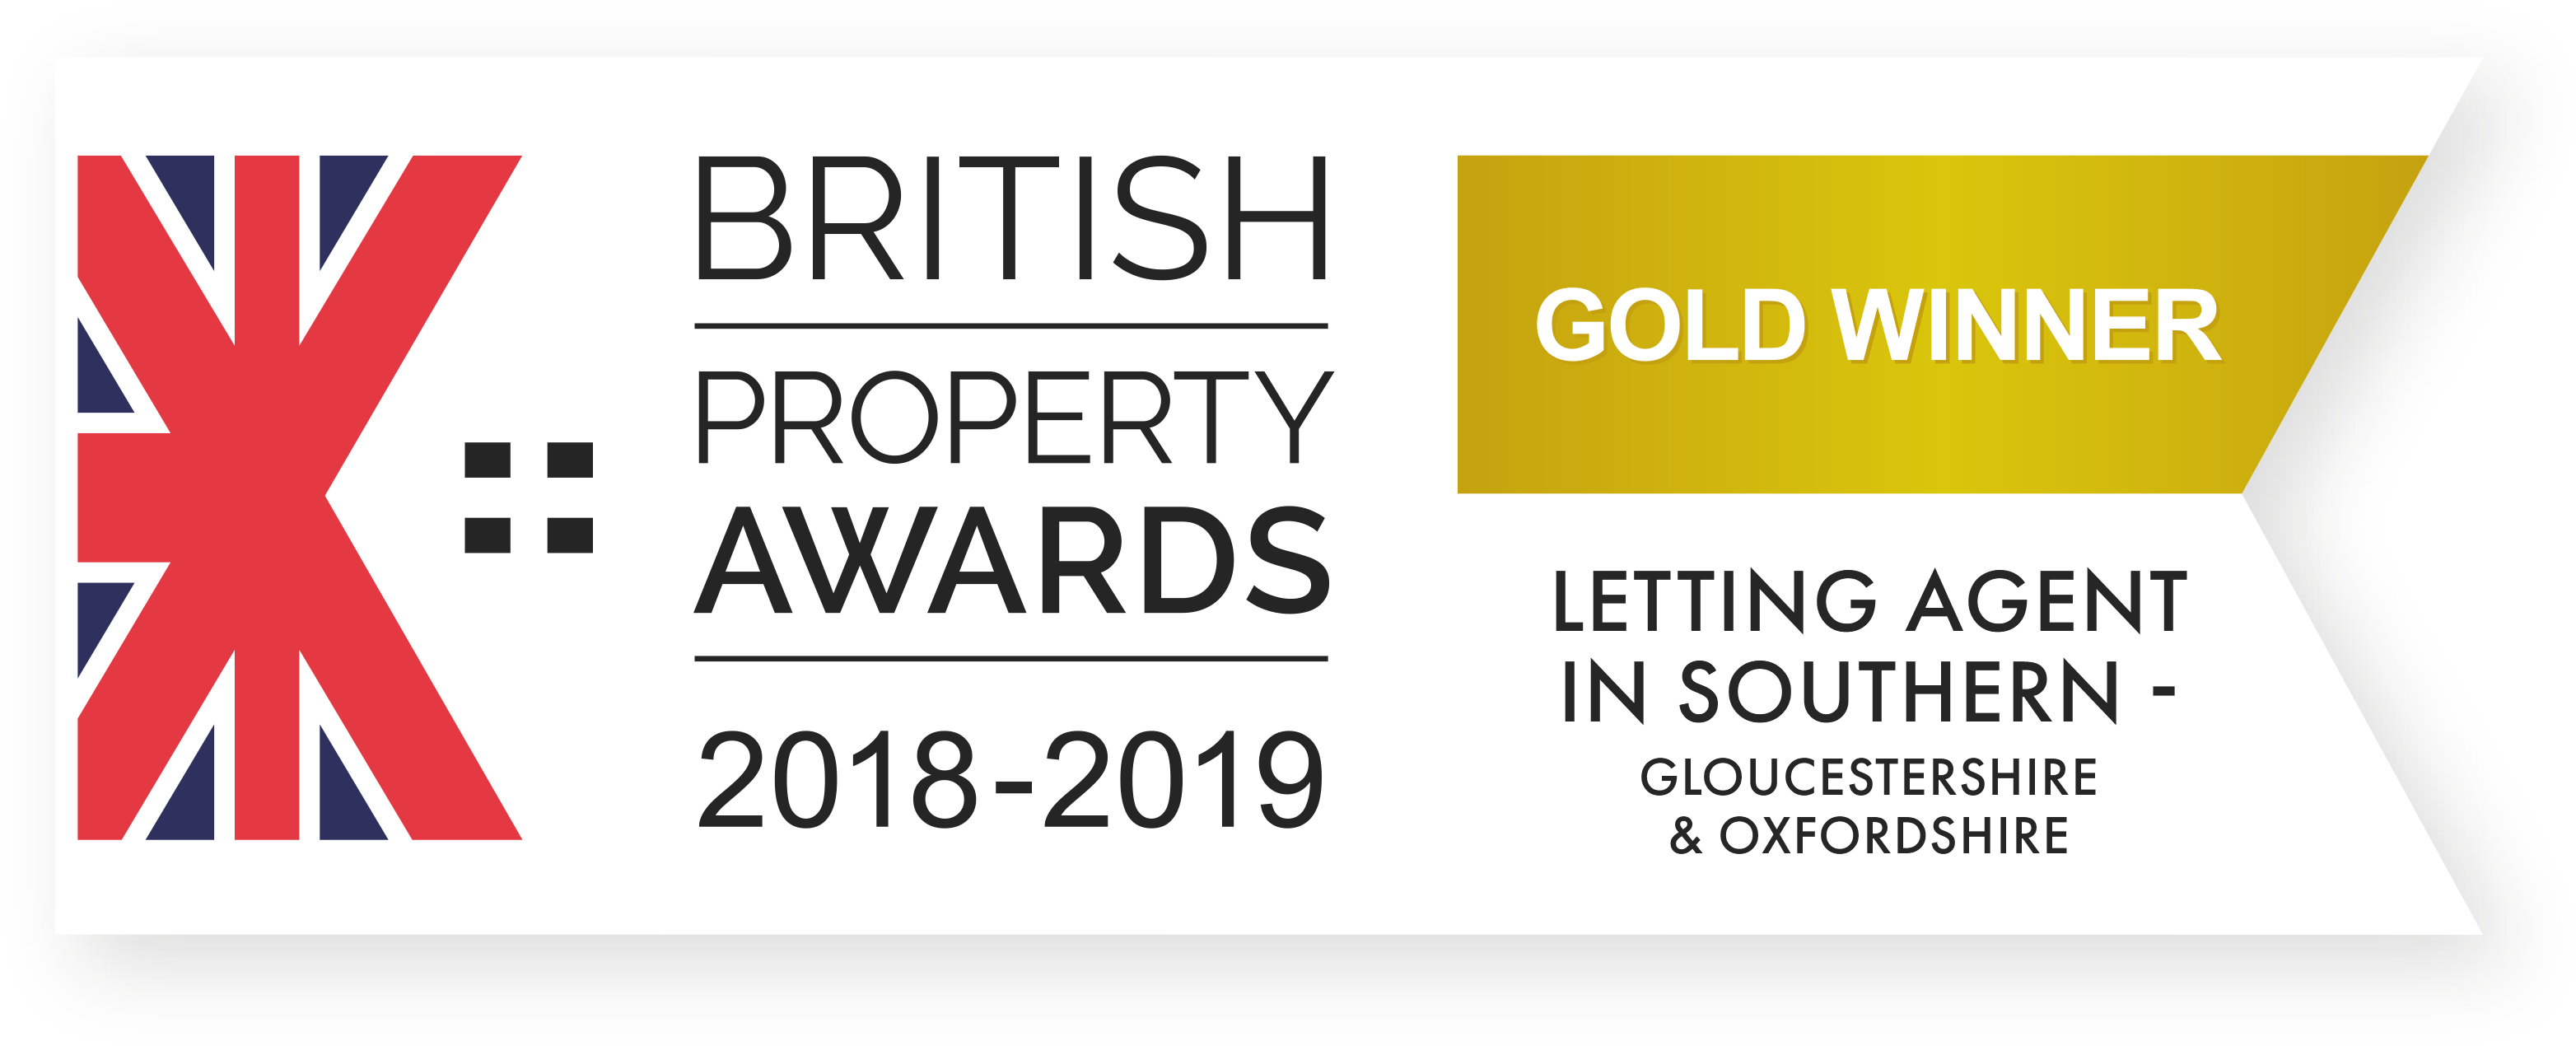 Bennett Jones wins Gold Award for Southern Region - Gloucestershire and Oxfordshire